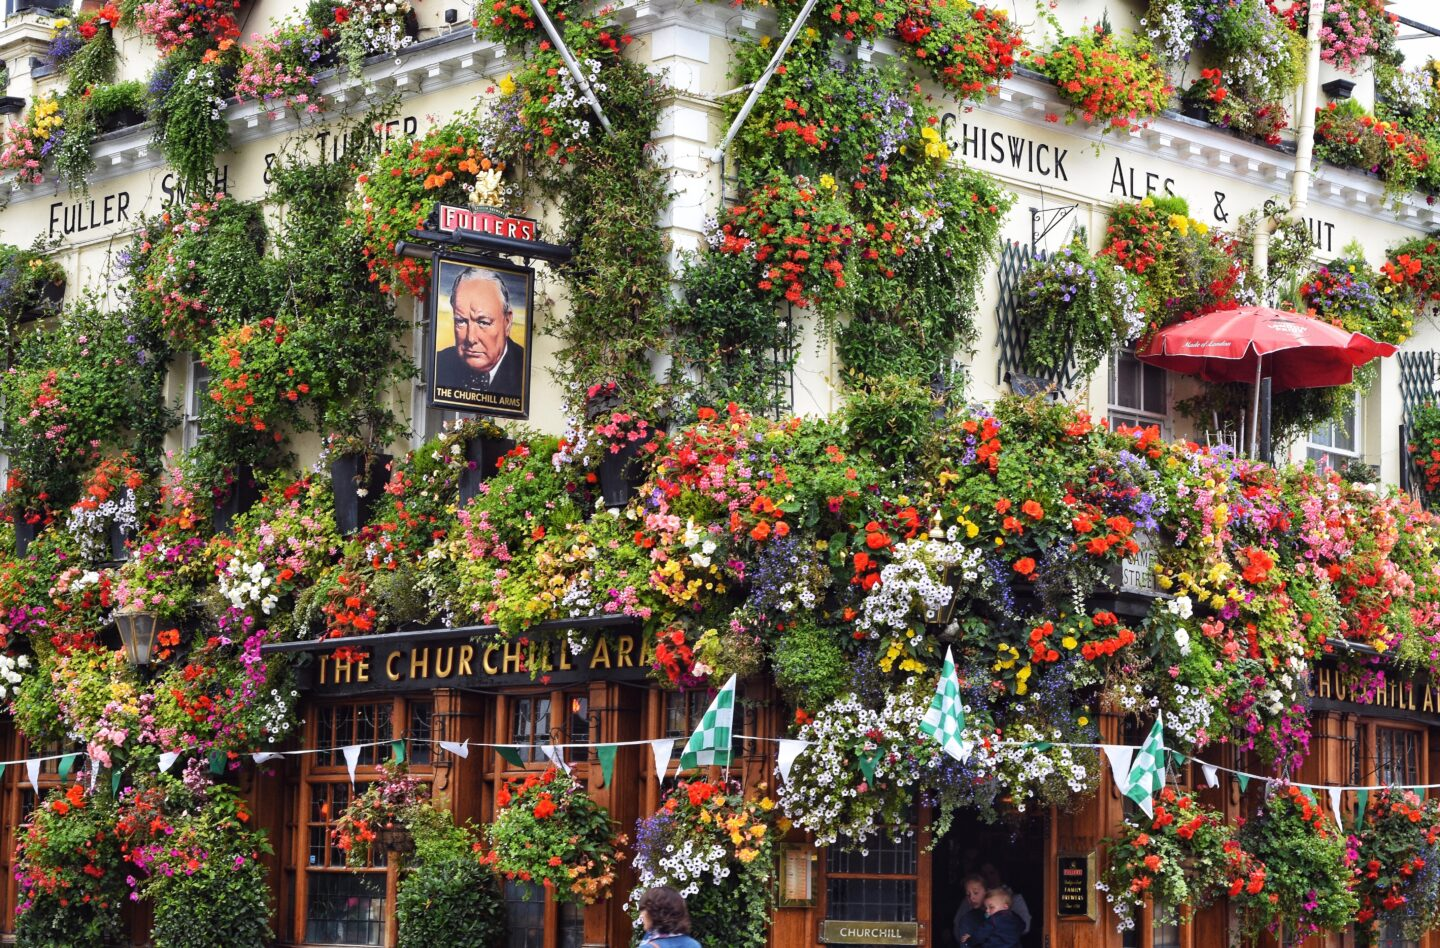 The Churchill Arms pub in Kensington should be on your London bucket list